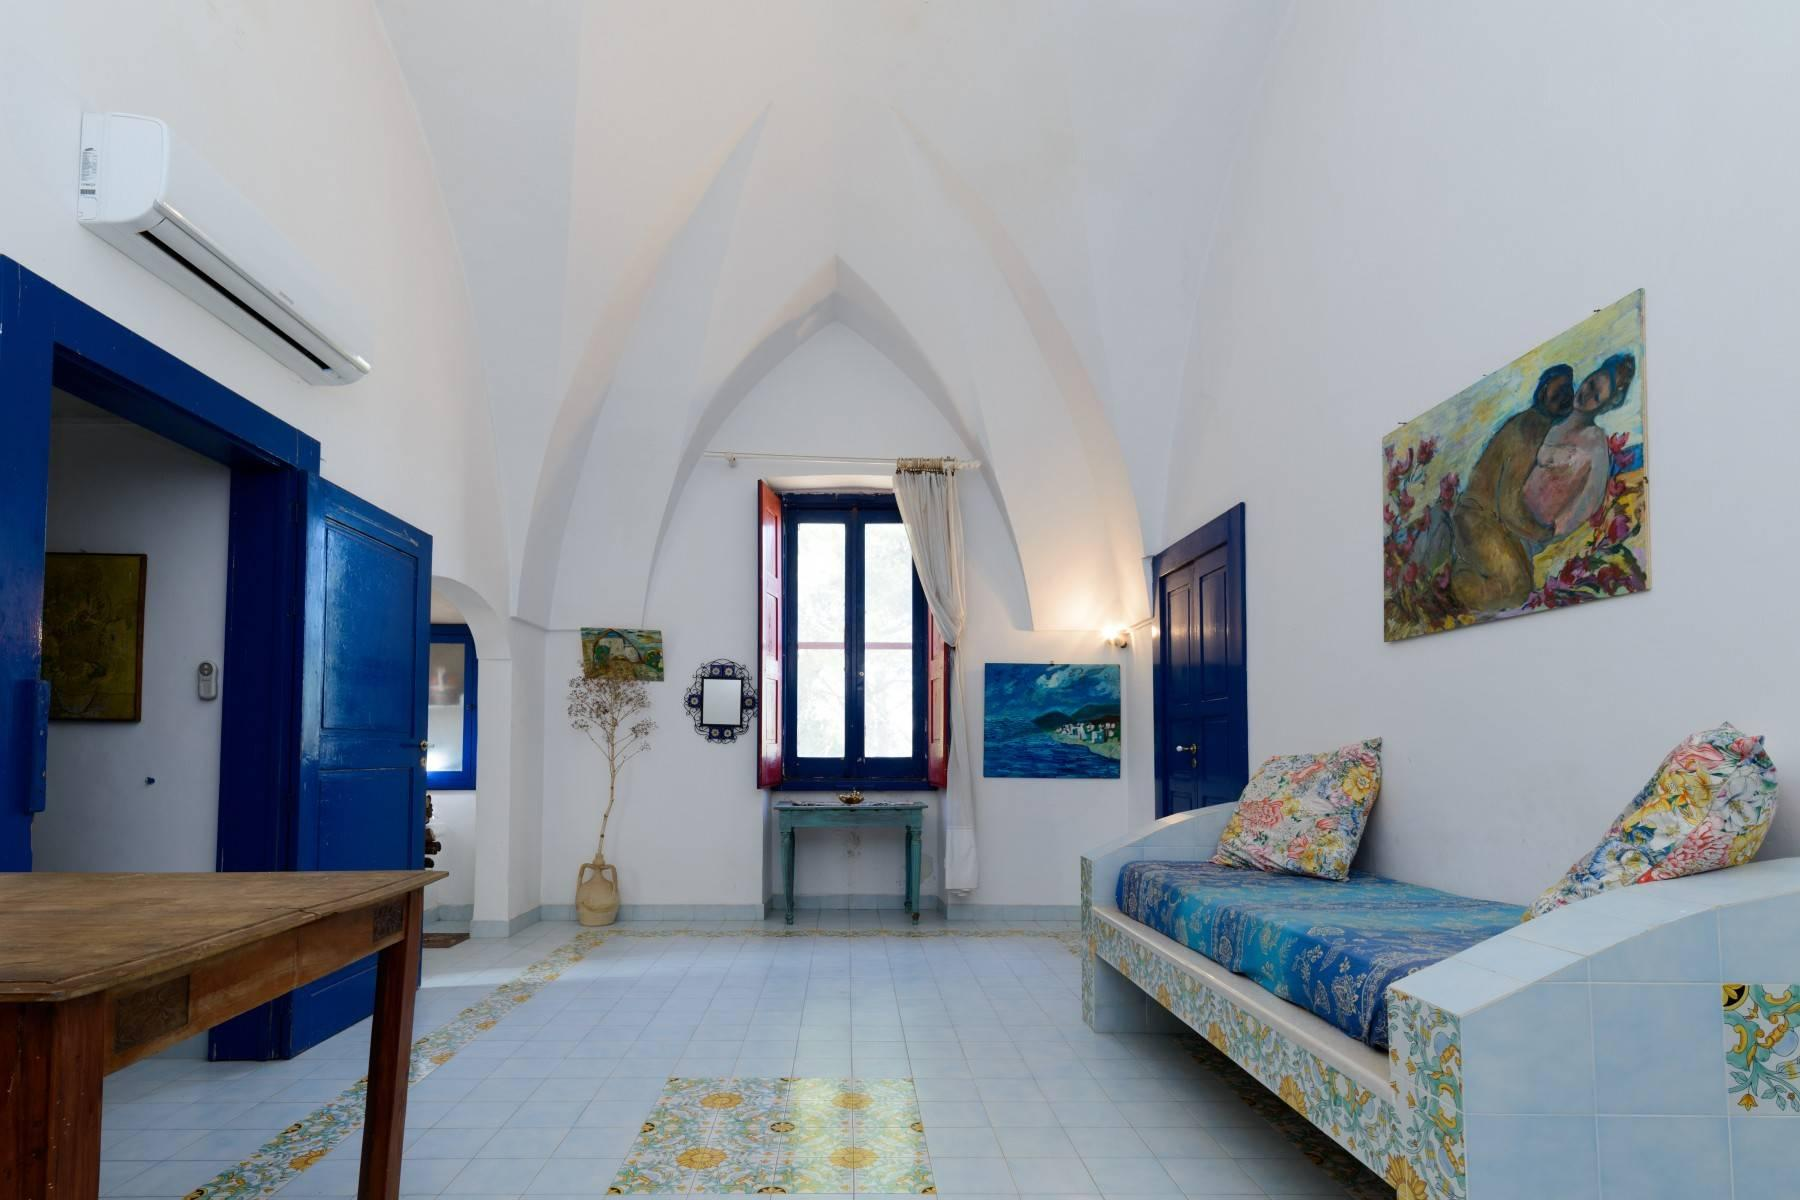 Luxury farmhouse in the heart of Salento - 35